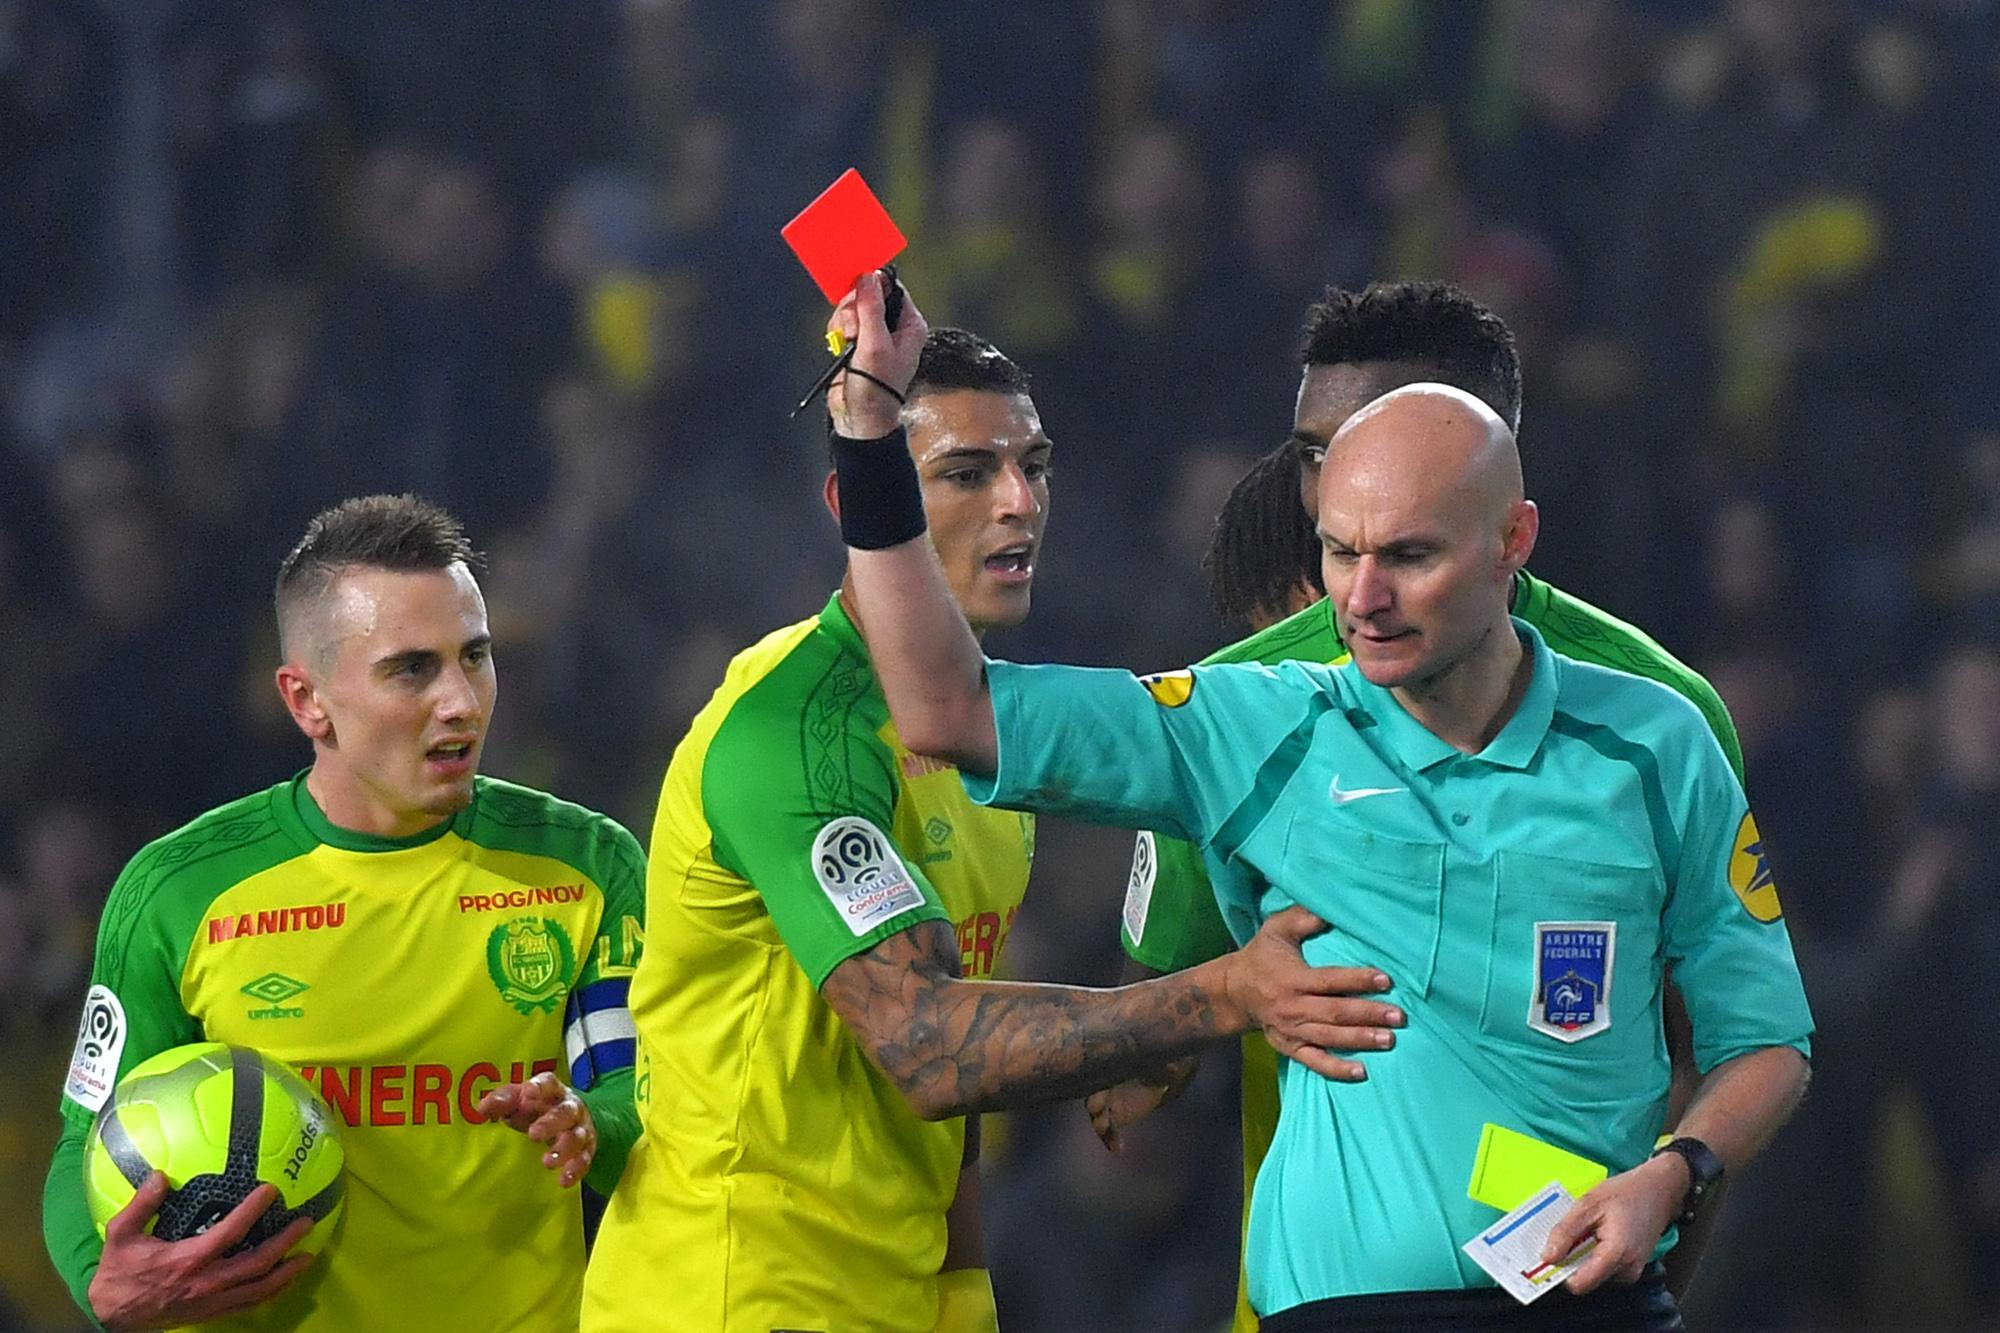 Chapron was adamant the incident deserved a red card